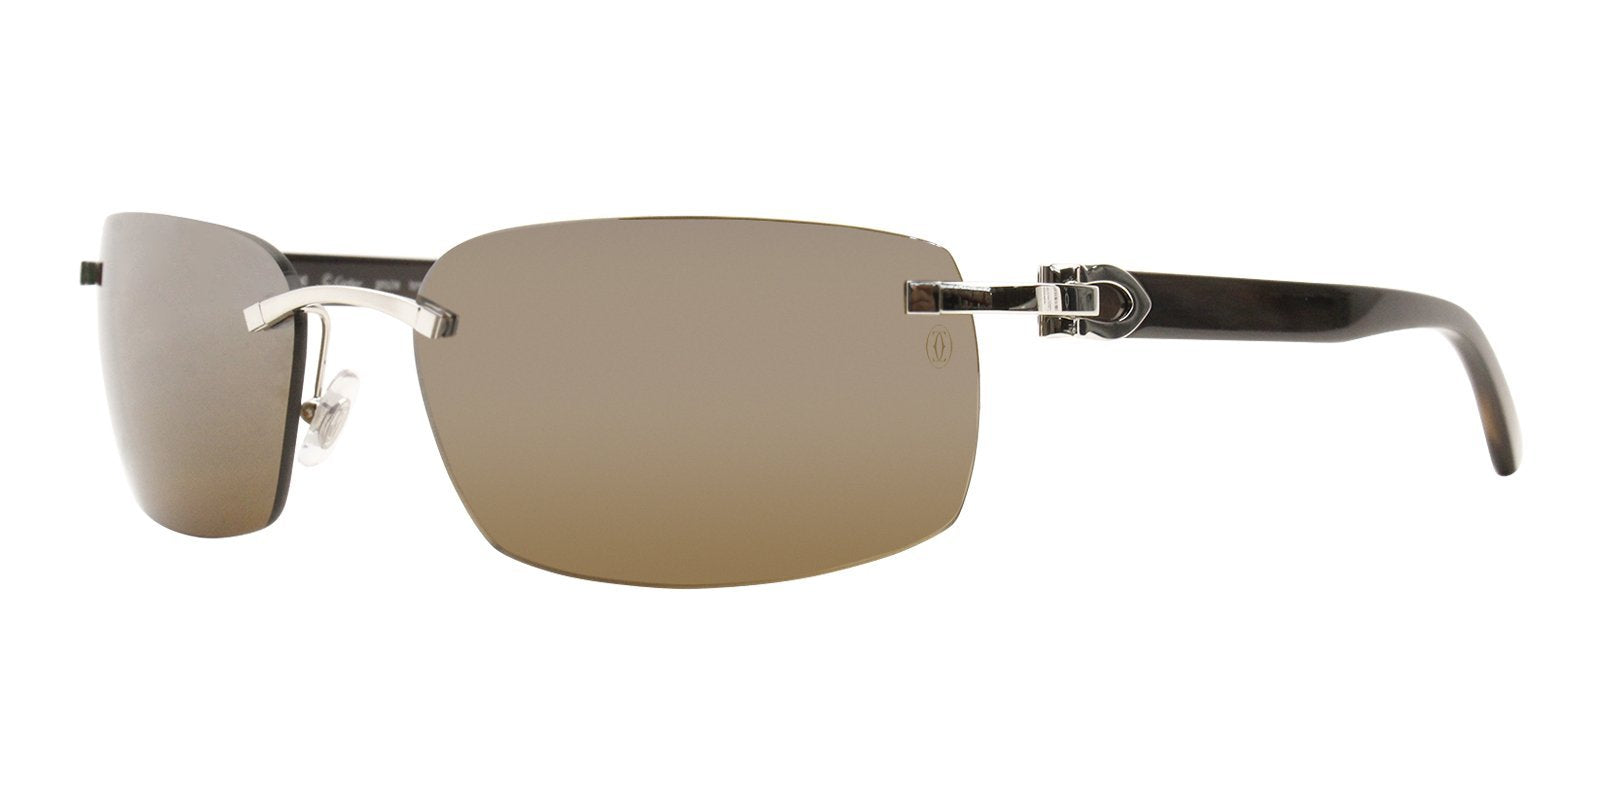 Cartier - C Decor Silver Rimless Men Sunglasses - 60mm-Sunglasses-Designer Eyes